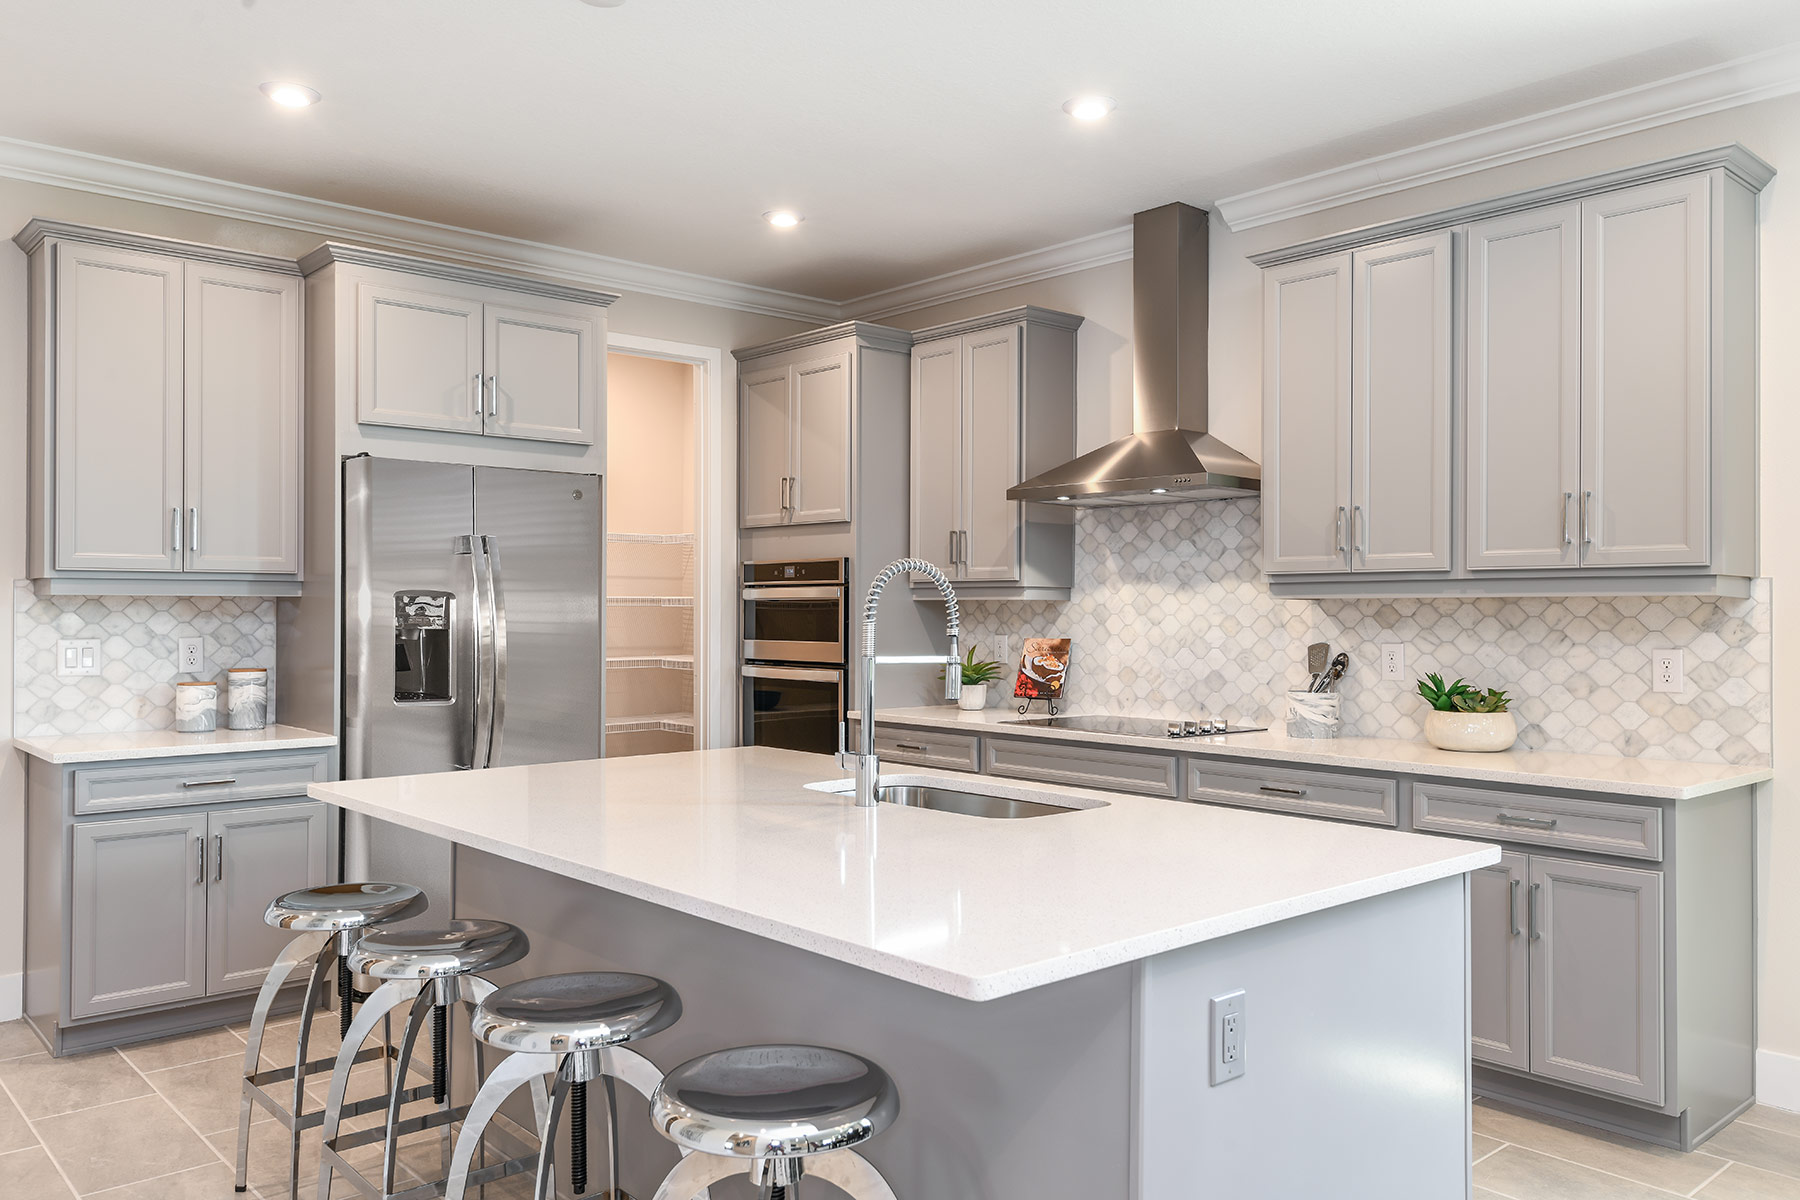 Dominica II Plan Kitchen at Wellen Park - Renaissance in Venice Florida by Mattamy Homes